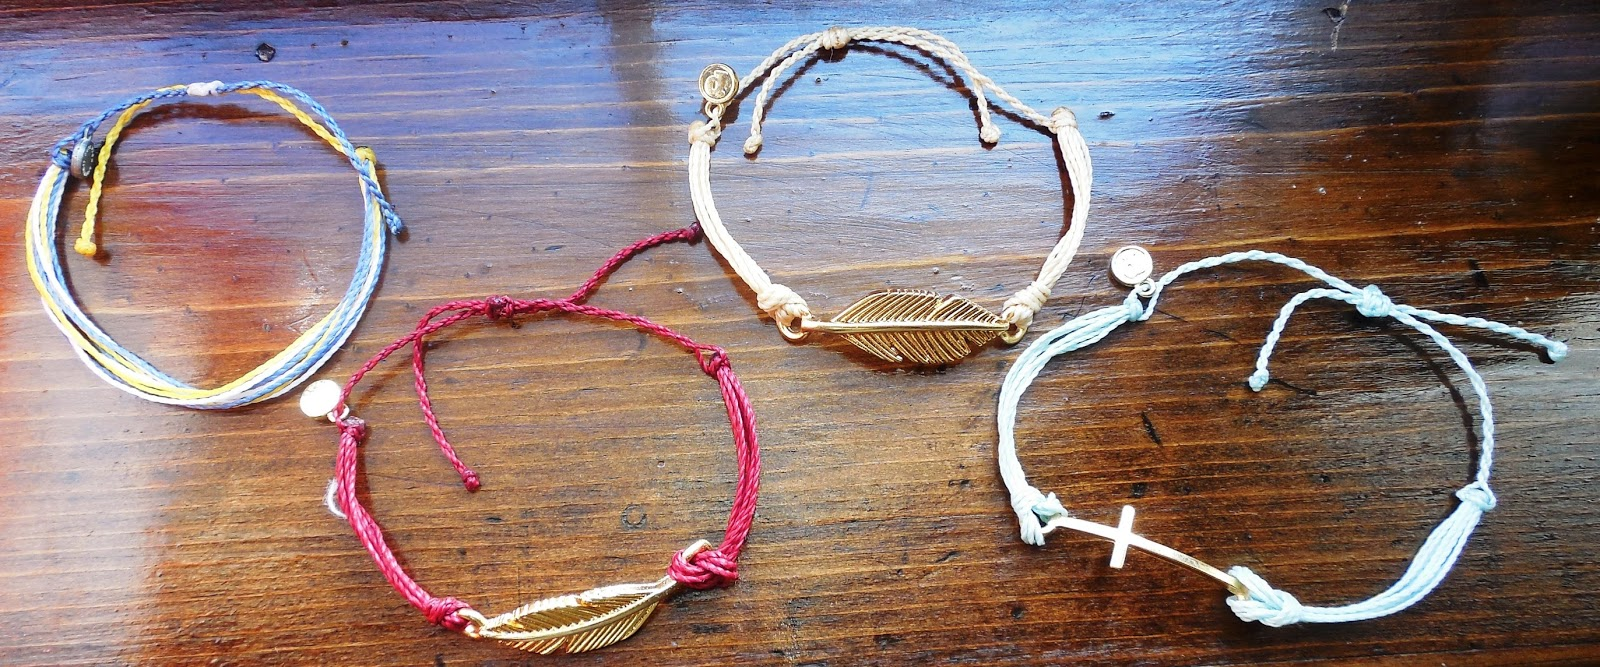 Pura Vida Bracelets Review And Giveaway The Nutritionist